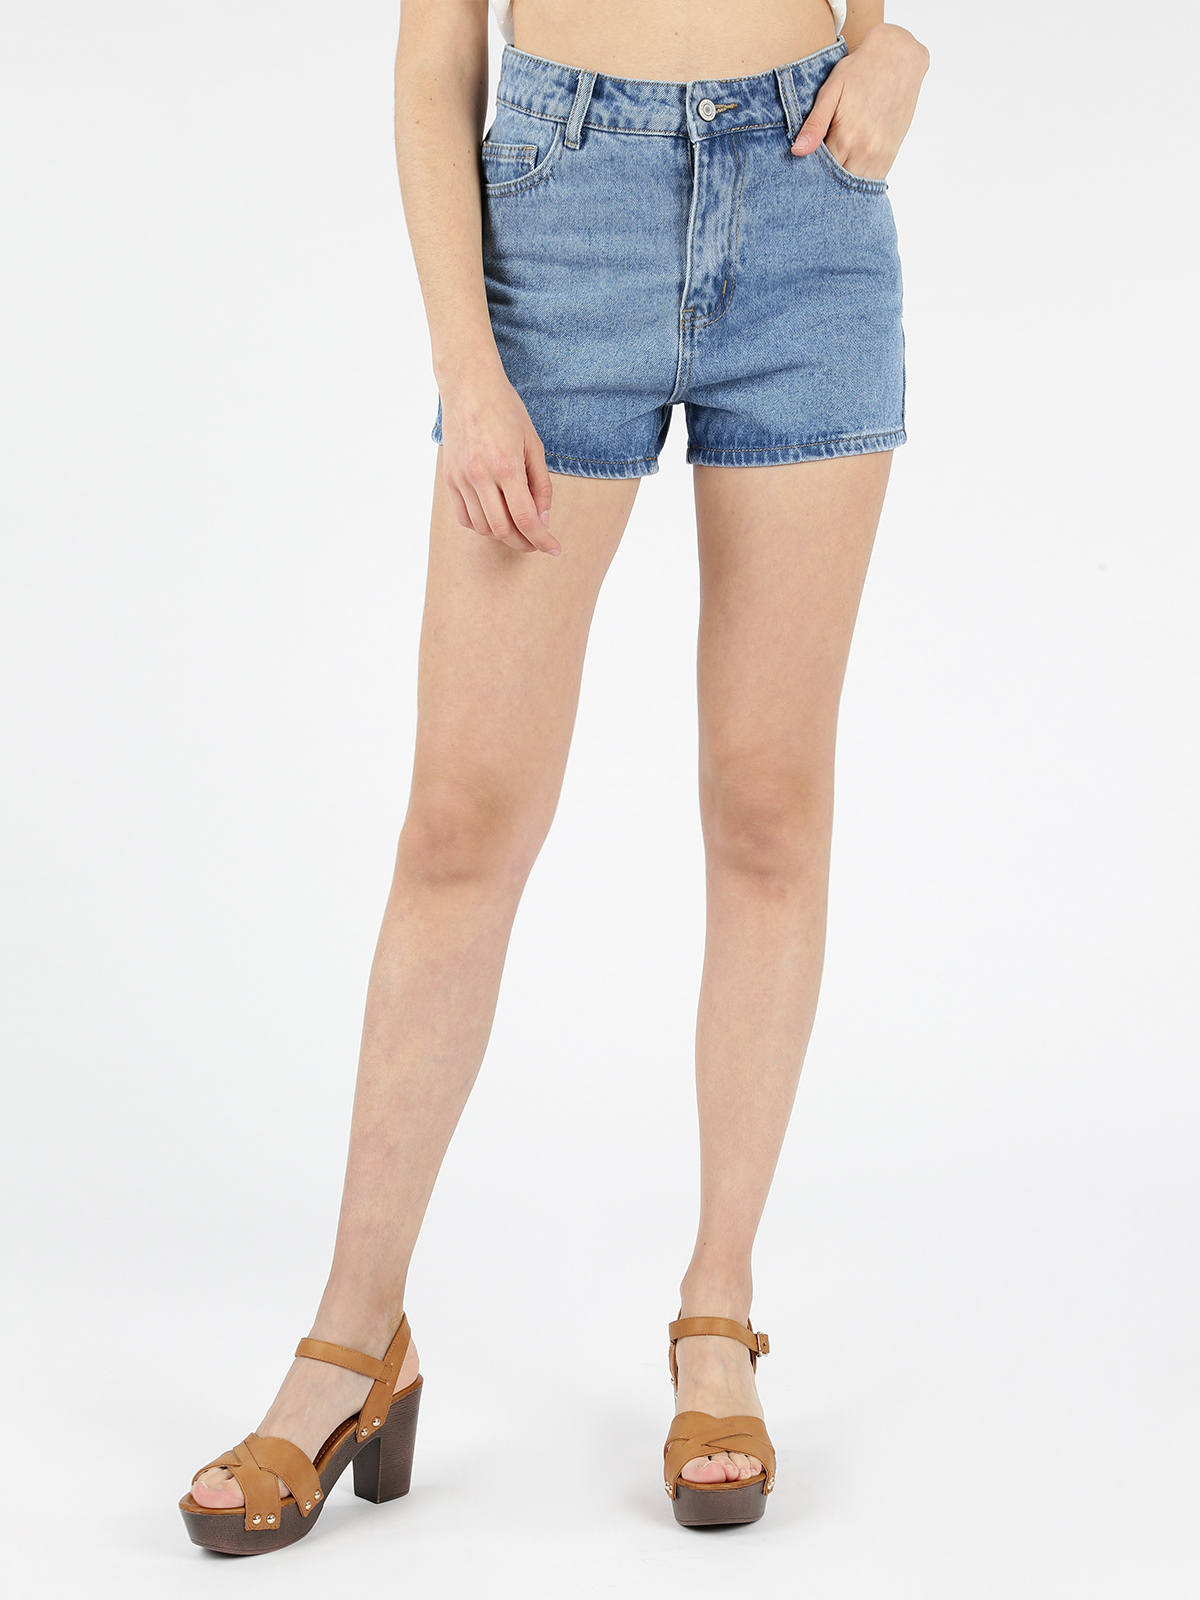 ANGELICA 2000 Shorts High Waist Jeans